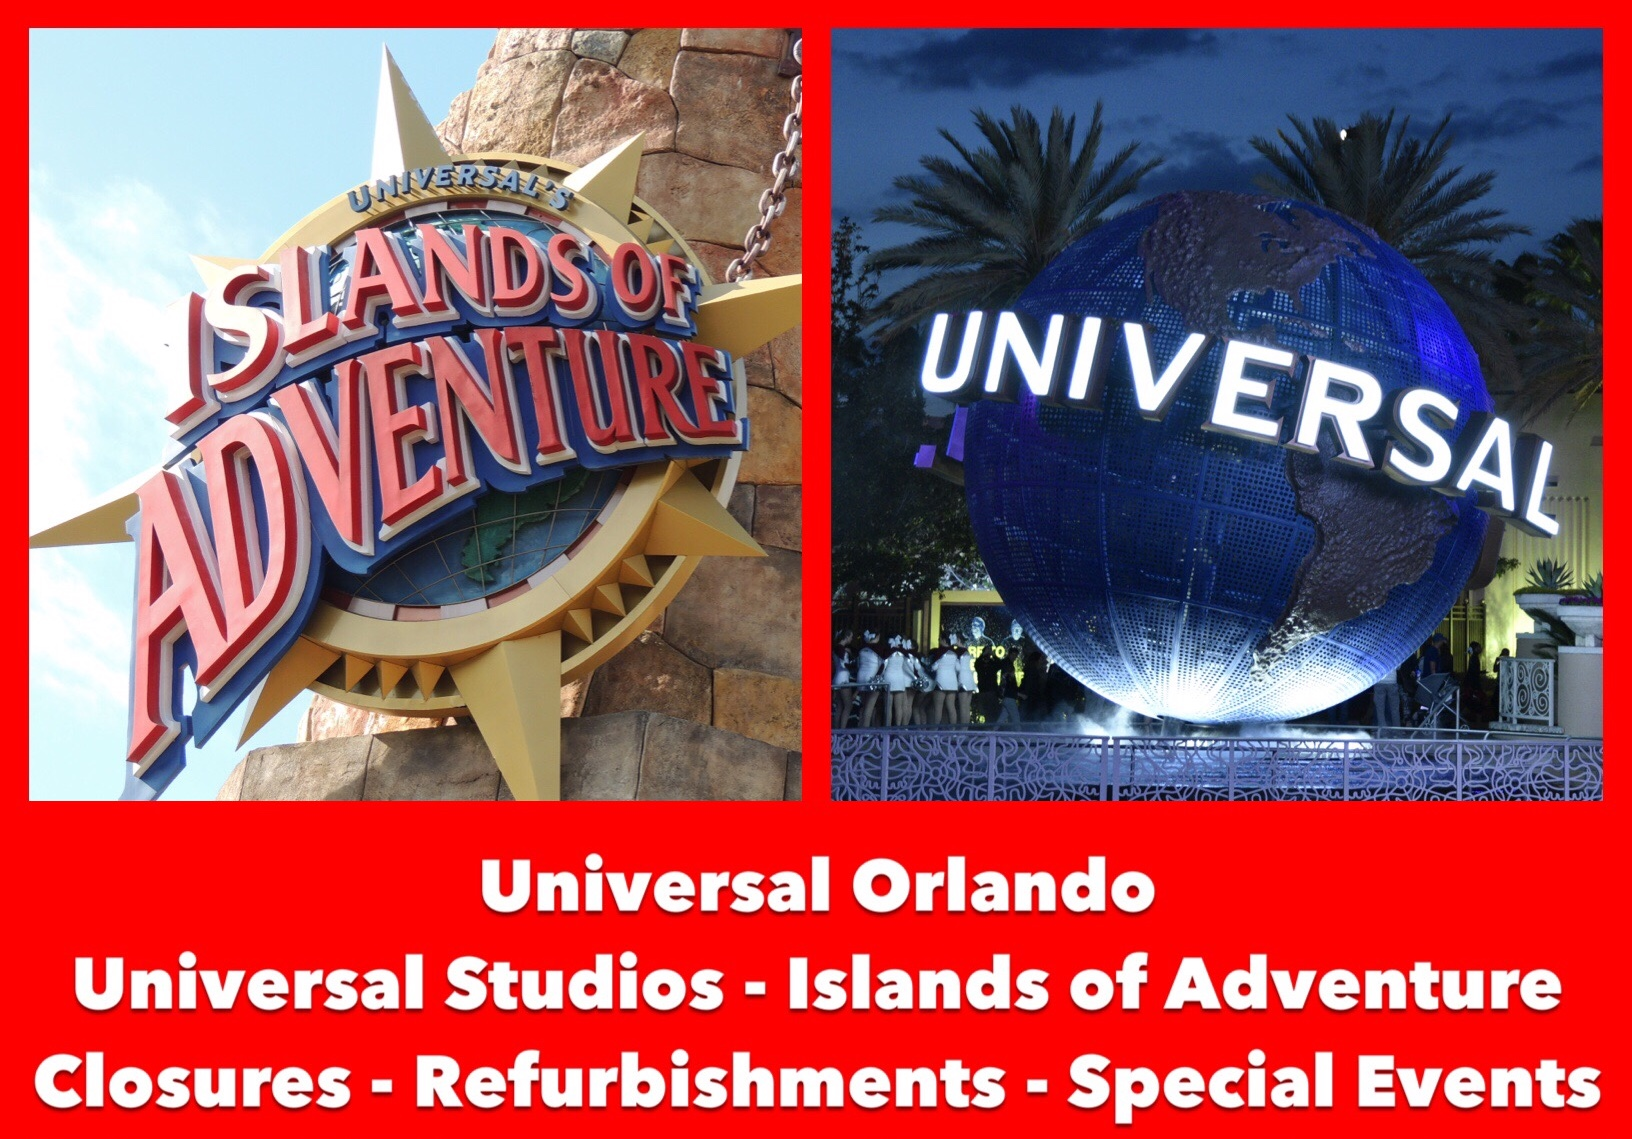 Island Of Adventure Orlando Halloween 2020 Universal Orlando Ride Closures and Refurbishments — Build A